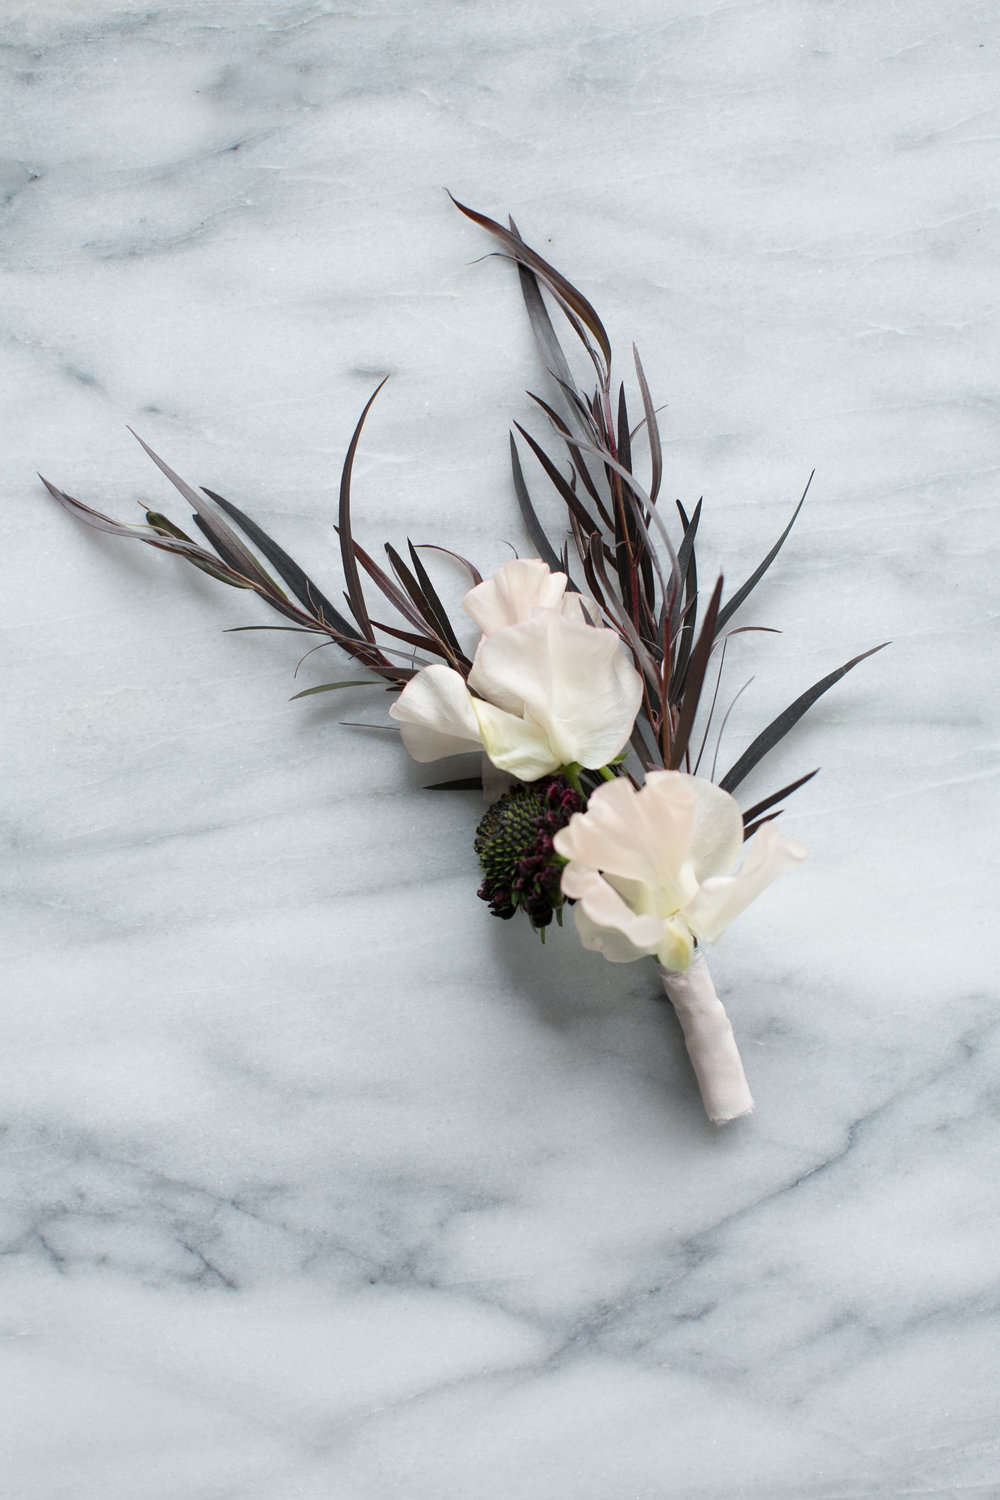 LaurenBalingitAmyOsabaatlantawedding-ivory-and-beau-boutonniere-savannah-wedding-florist-savannah-wedding-designer-savannah-event-designer-savannah-wedding-planner.jpg